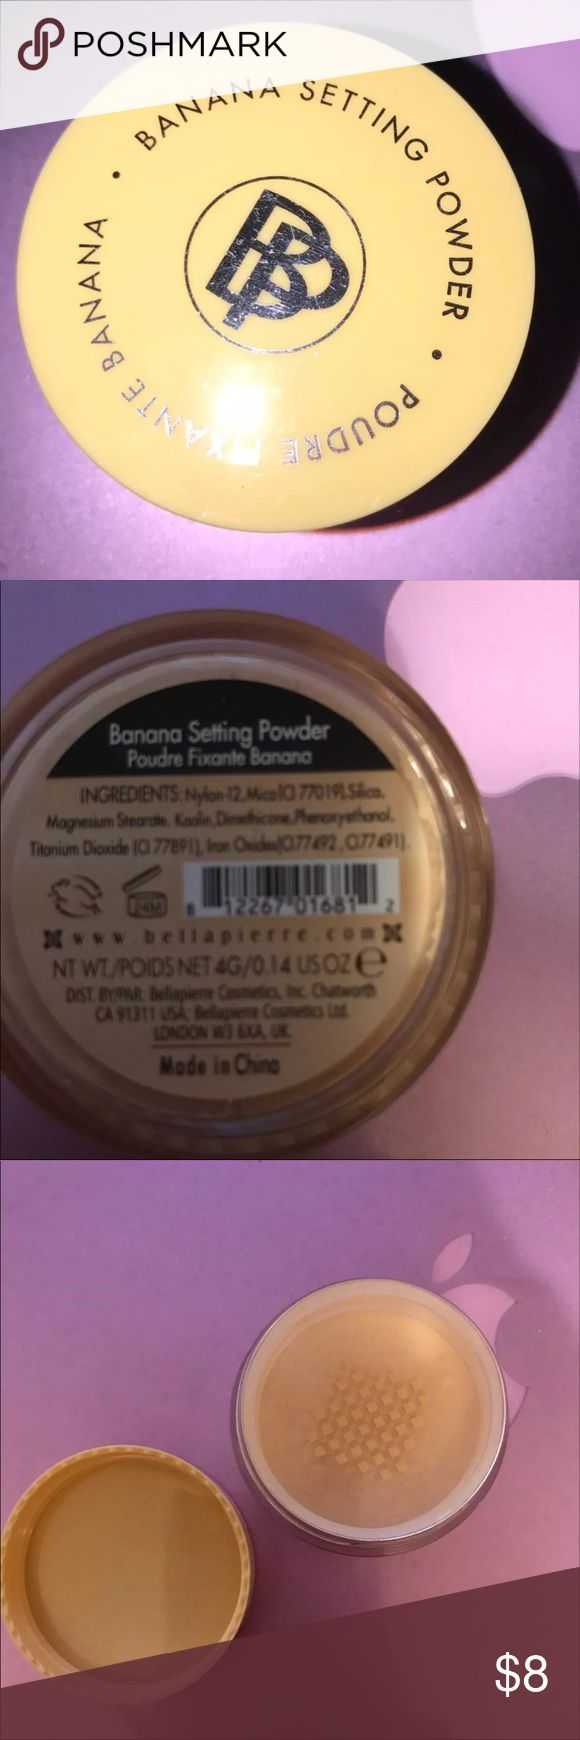 Banana Setting Powder by bellapierre Brand New. Sealed. Makeup Face Powder